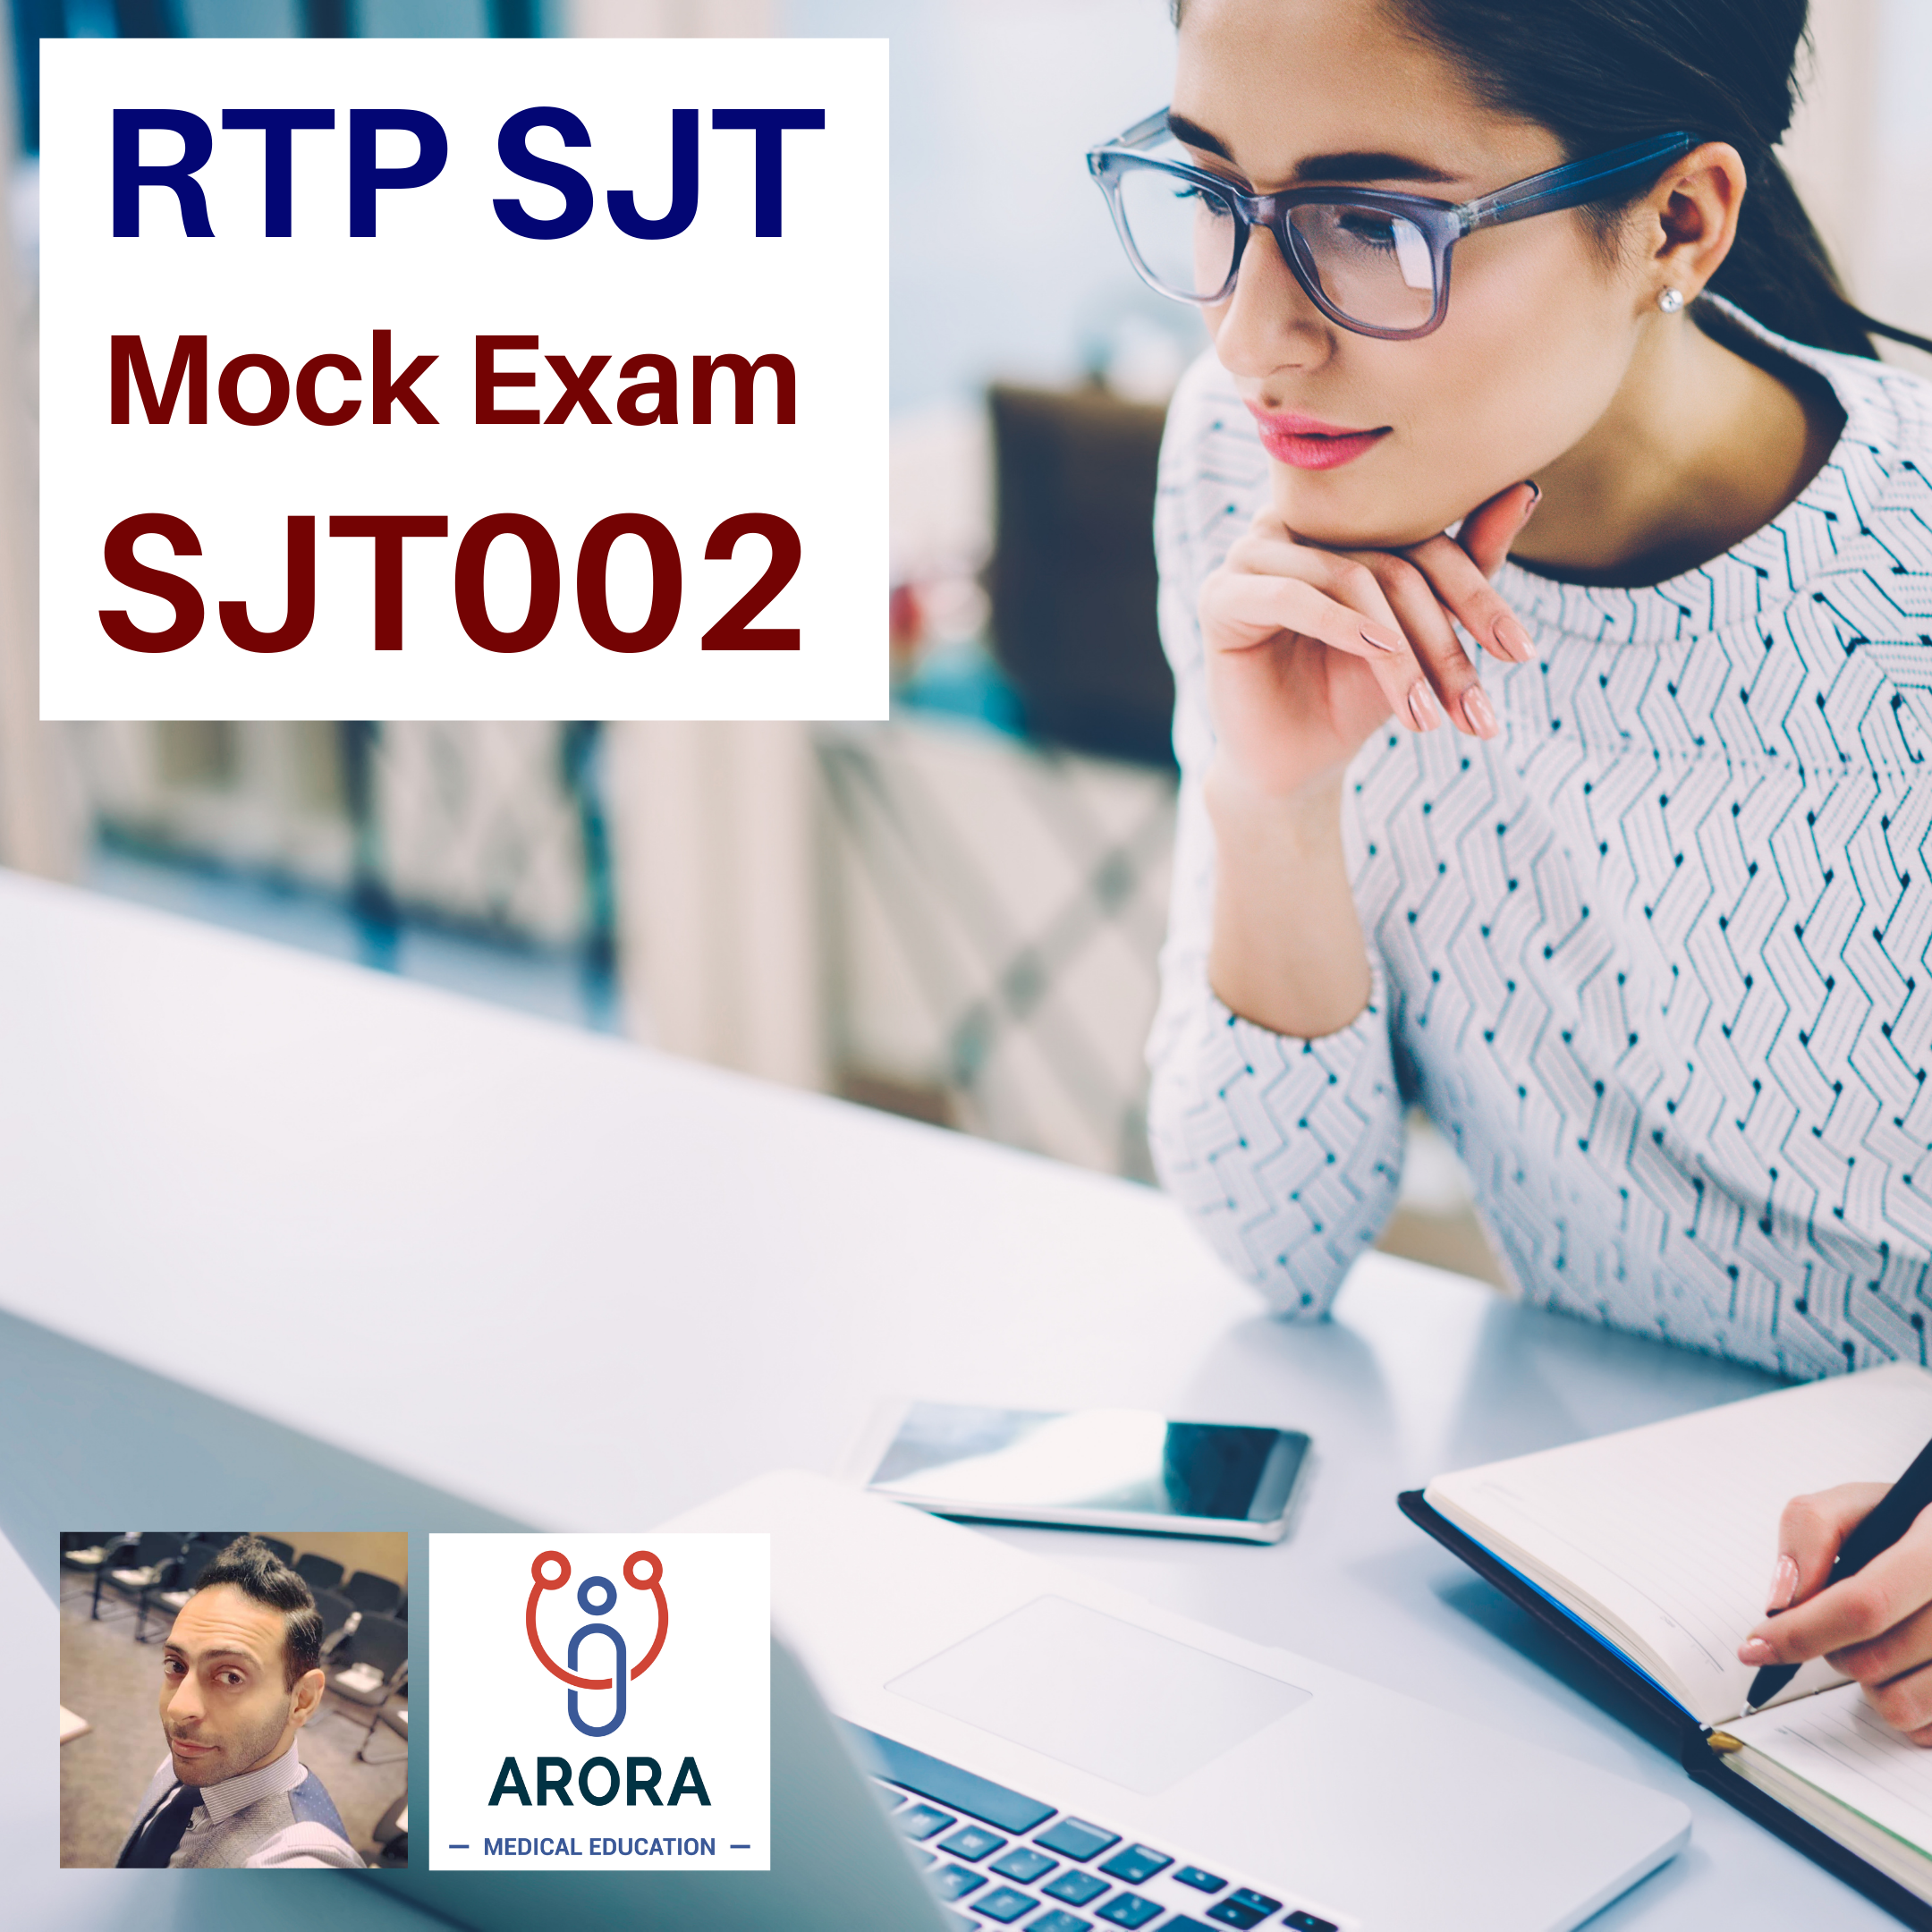 RTP SJT 002 - MRCGP CSA, AKT and PLAB Exam Courses and Online Webinars - Arora Medical Education